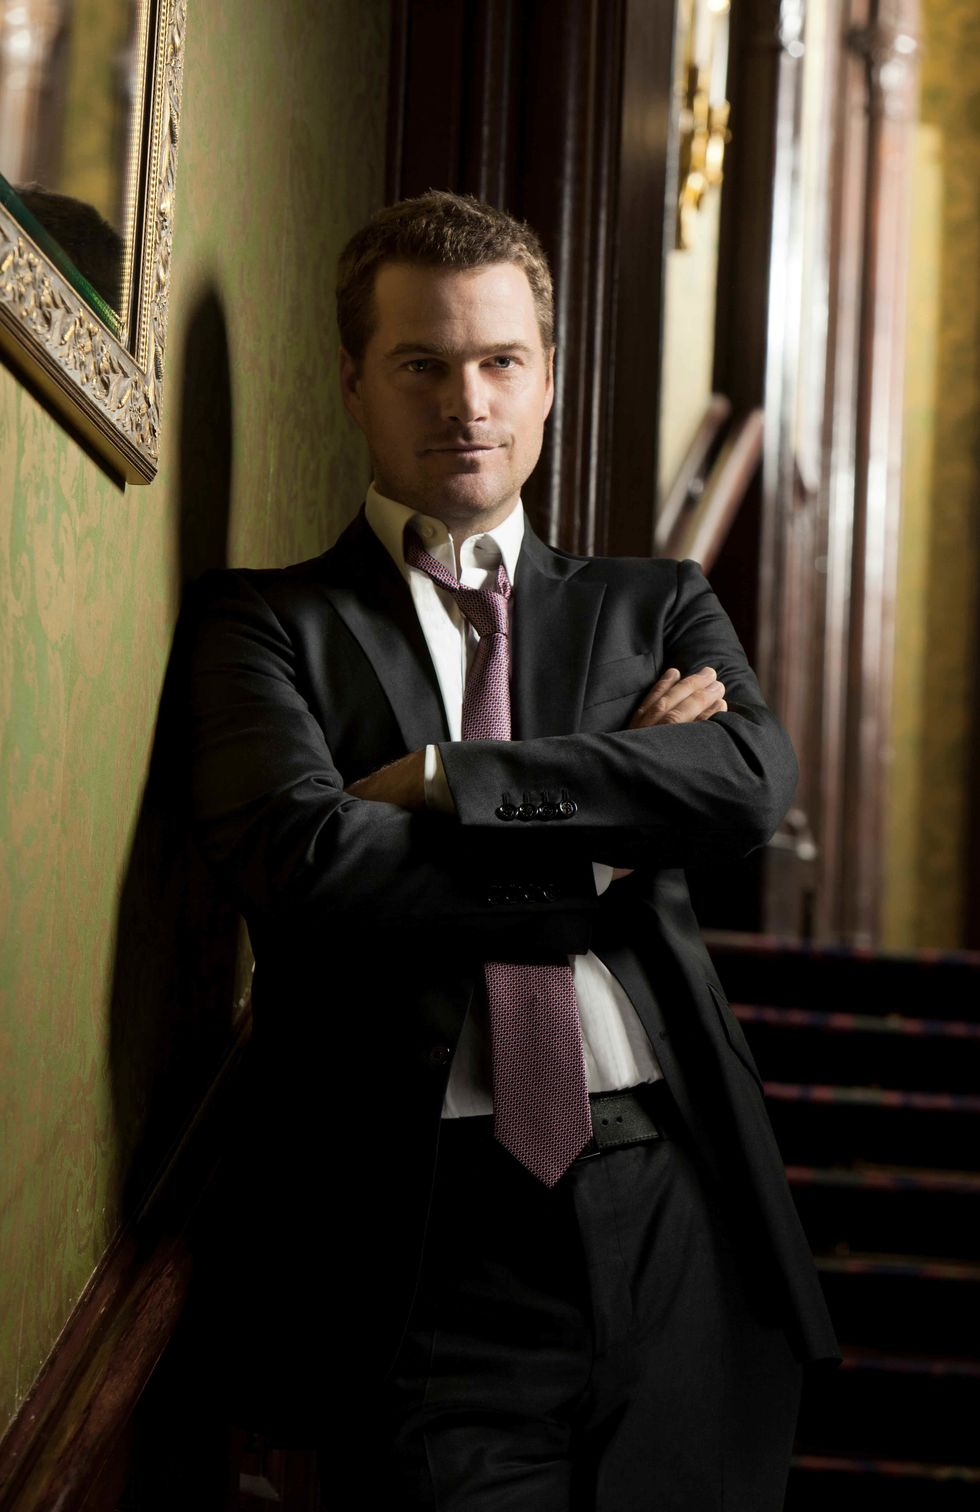 Chris O'Donnell wearing  suit.